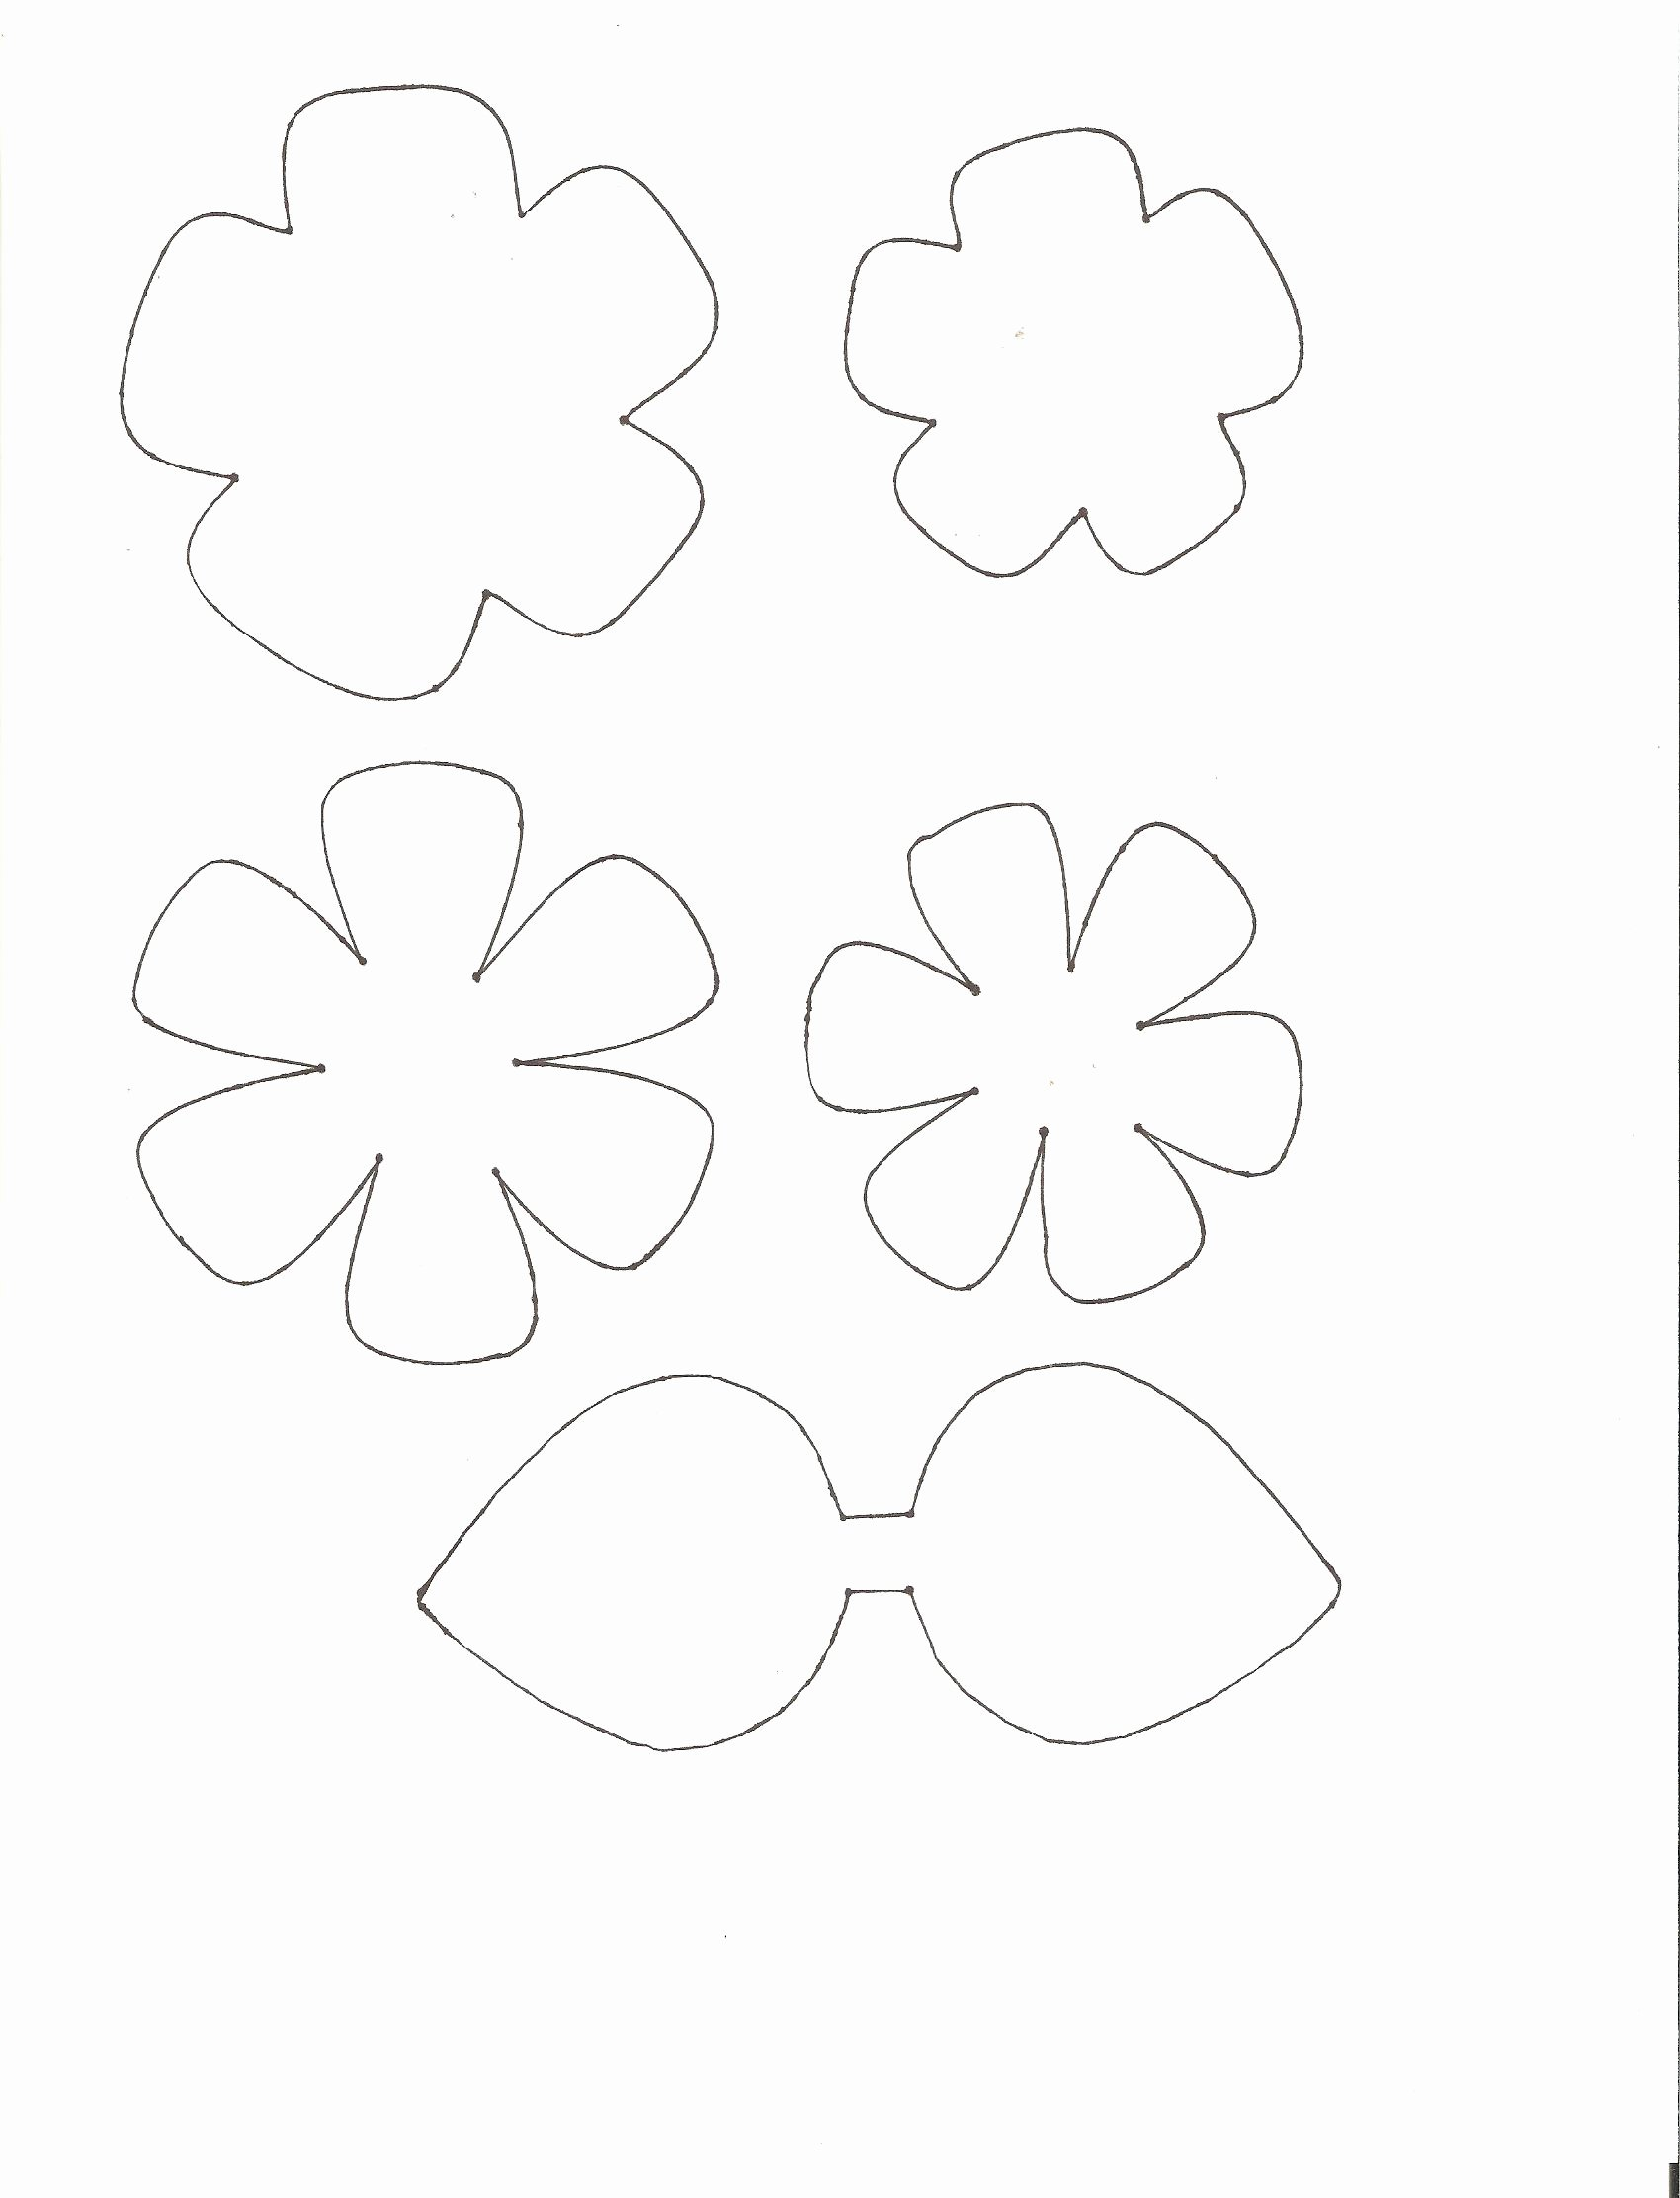 Paper Flower Templates to Print Beautiful Shabby Chic Scrap Fabric Flowers